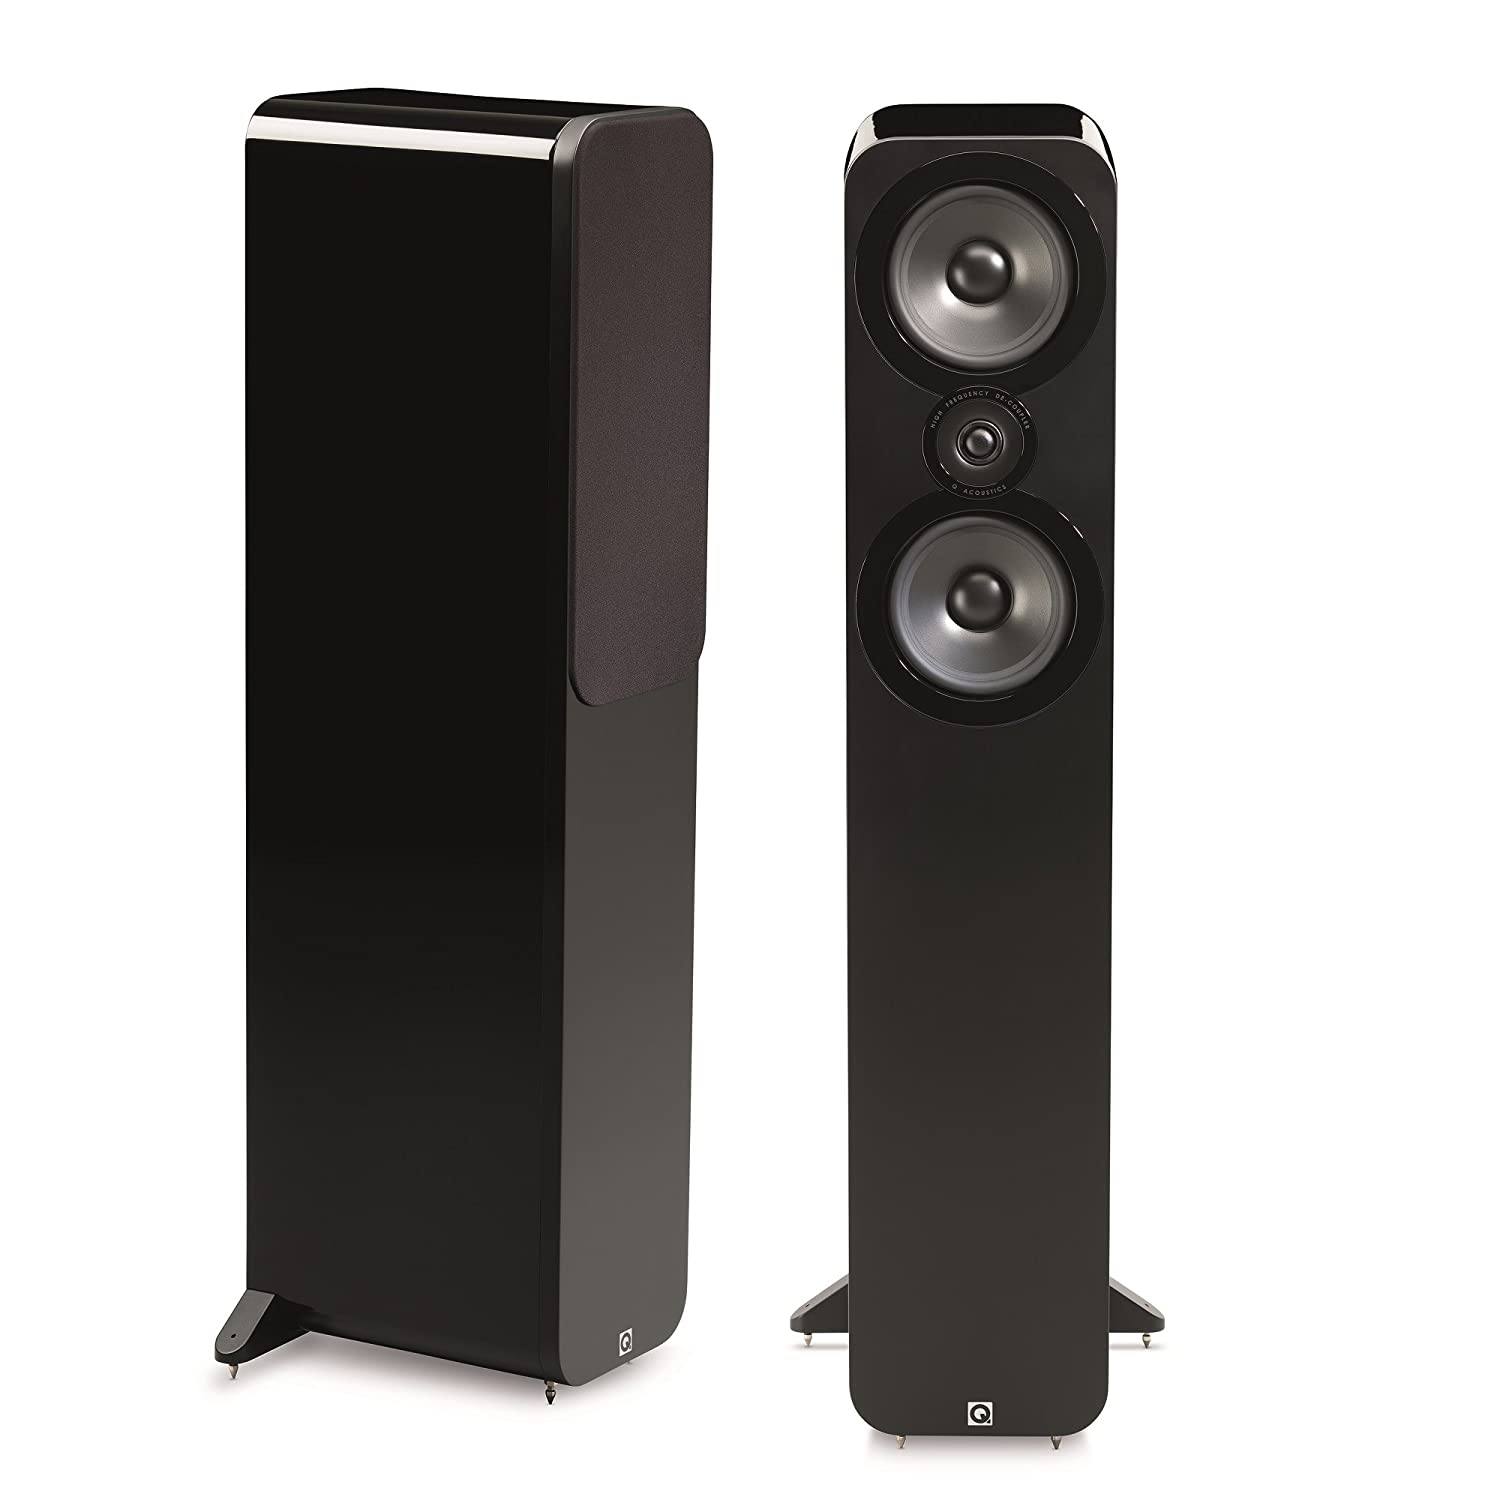 Q Acoustics 3050 - Altavoces (Speaker set unit, De 2 vías, Piso, 25W, 100W, 44-22000 Hz) Negro